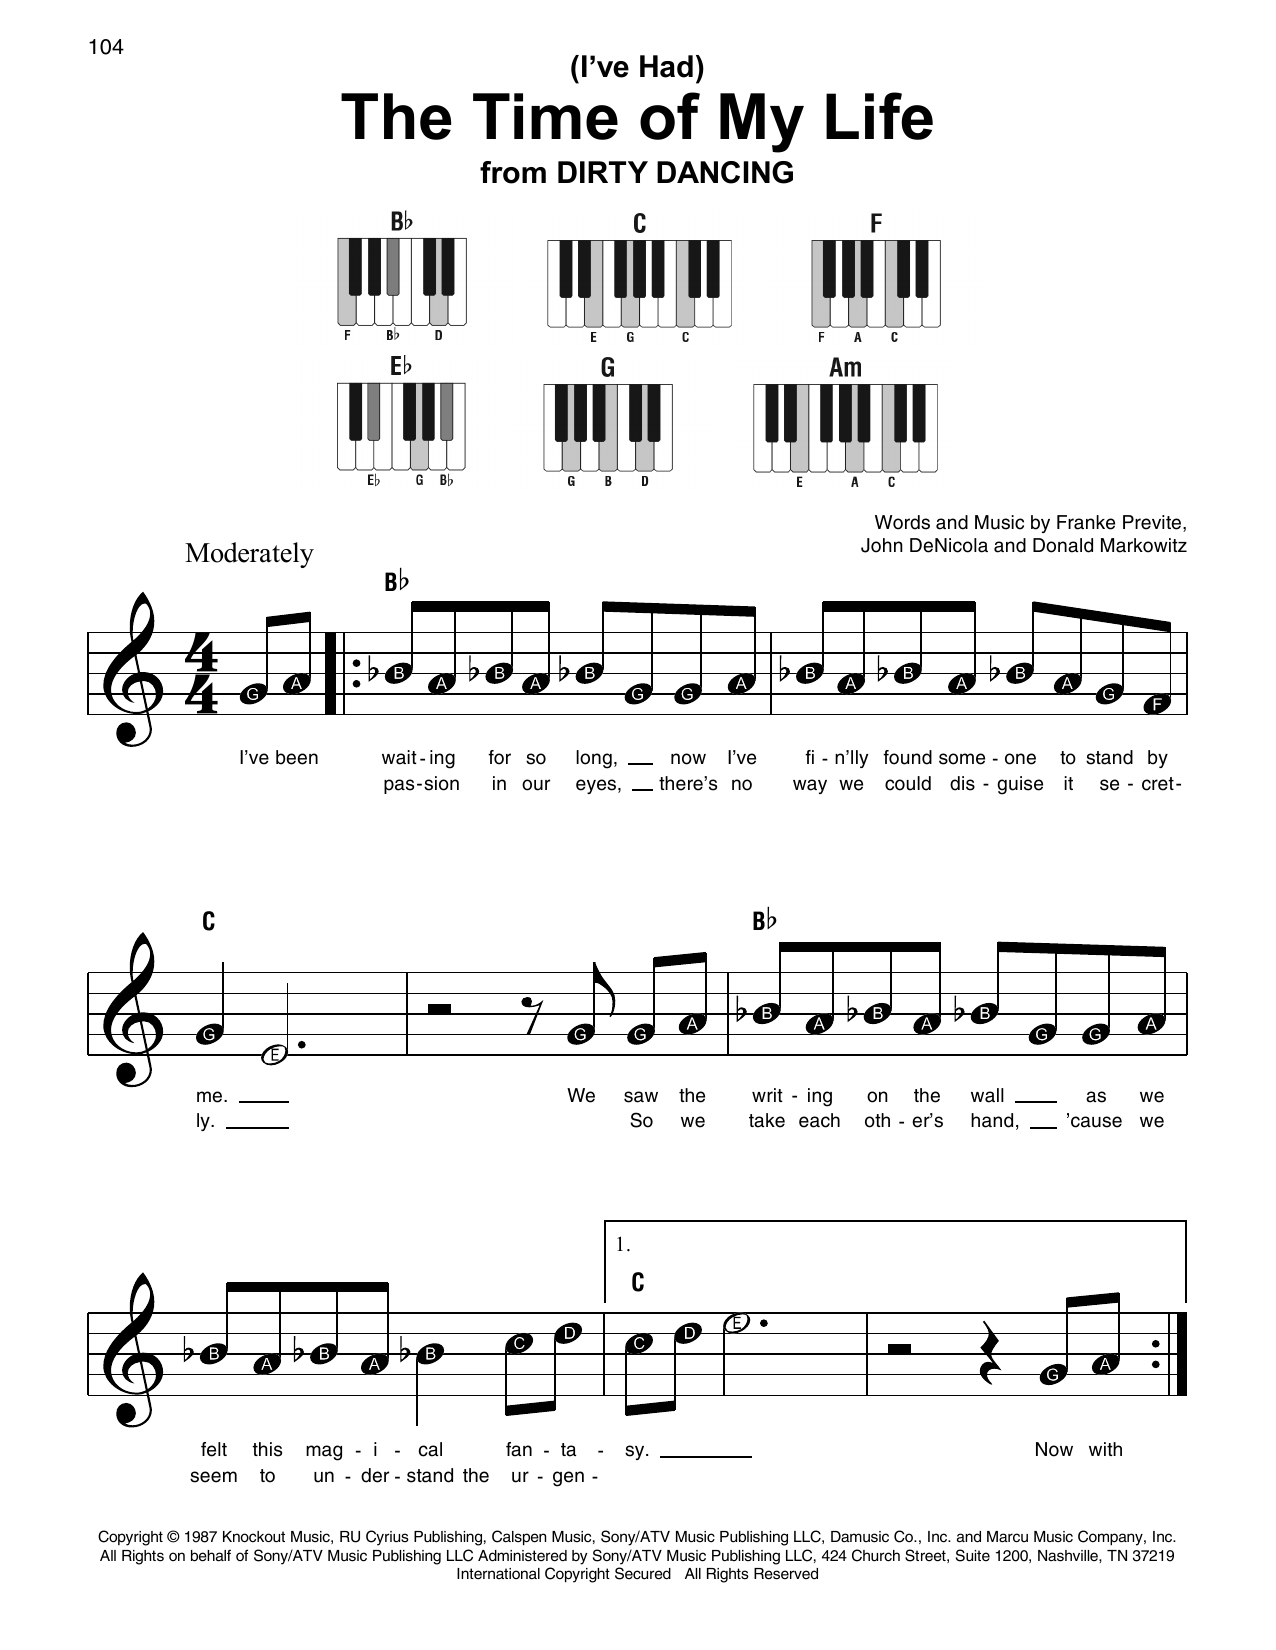 Bill Medley & Jennifer Warnes (I've Had) The Time Of My Life sheet music notes and chords. Download Printable PDF.